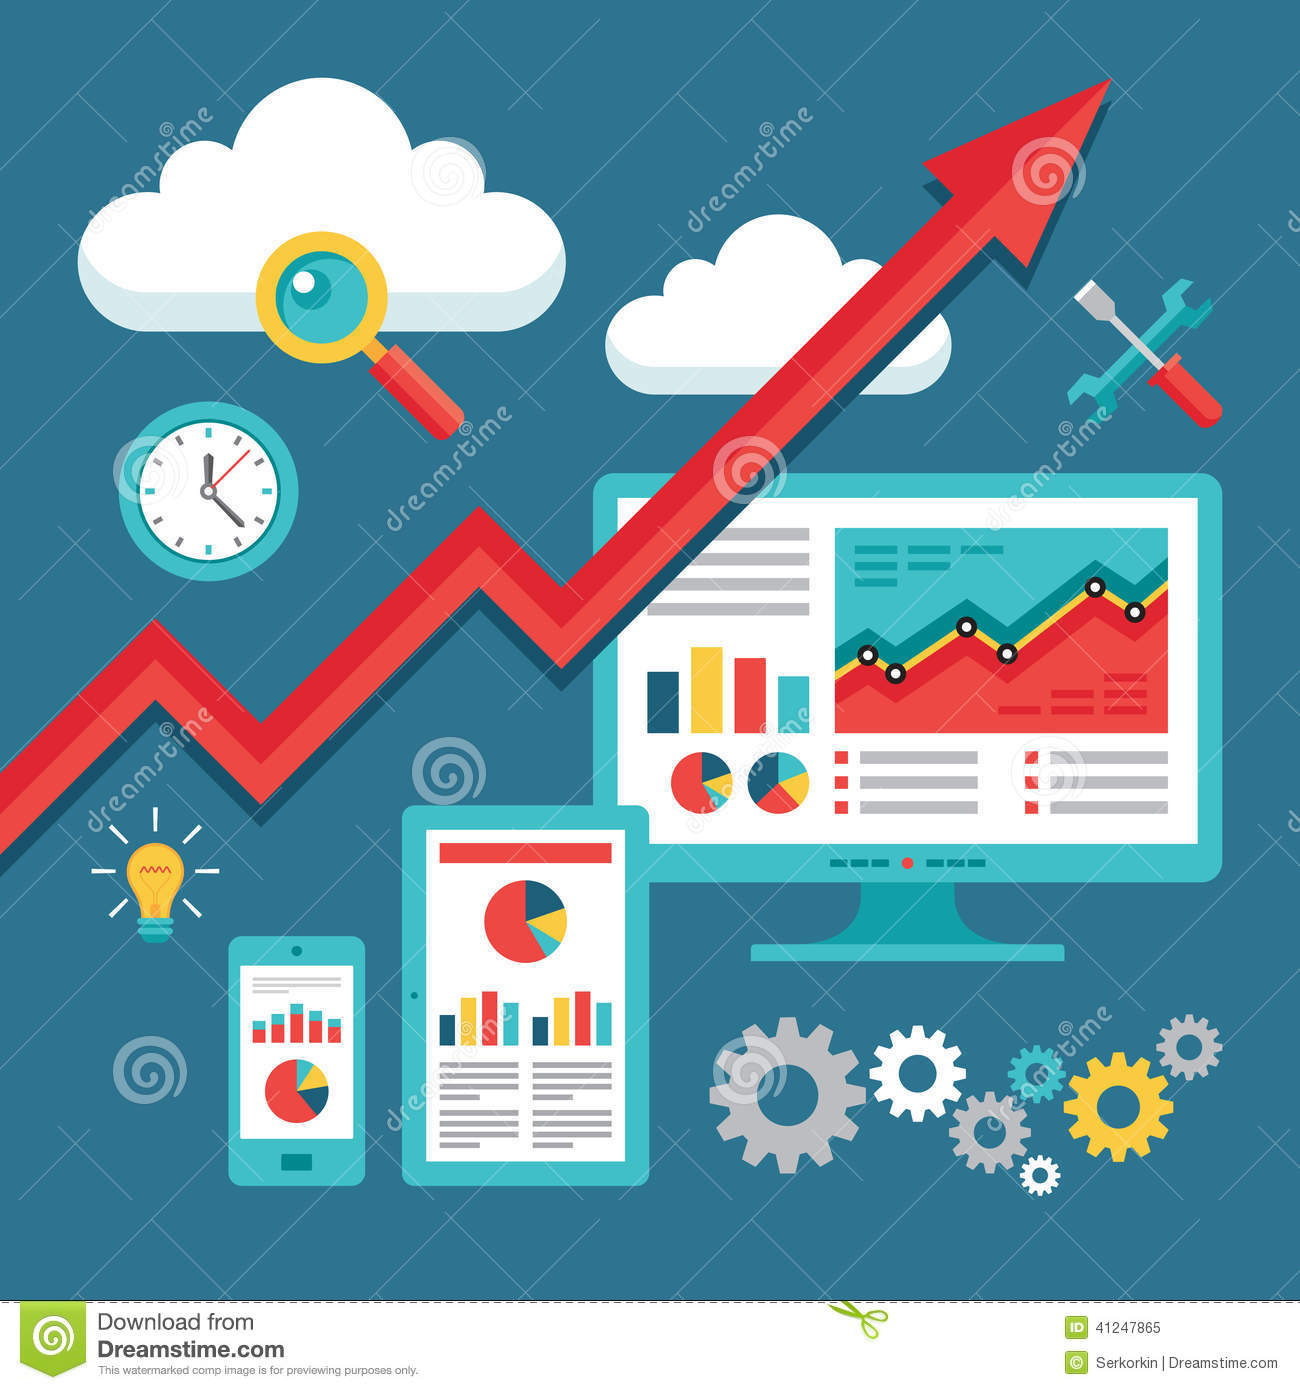 Search Stock Photos SEO Search Engine